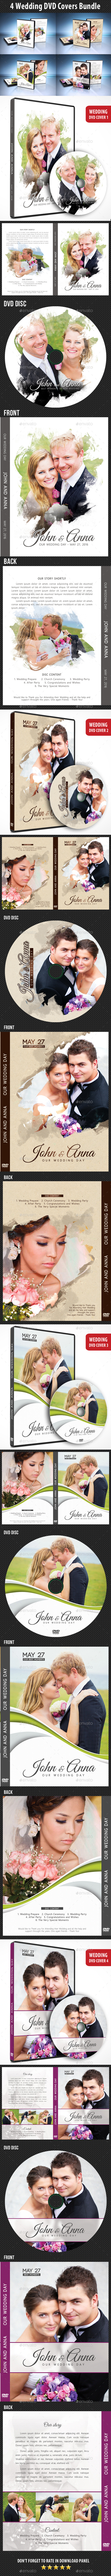 4 in 1 Wedding DVD Cover Templates Bundle 03 - CD & DVD Artwork Print Templates